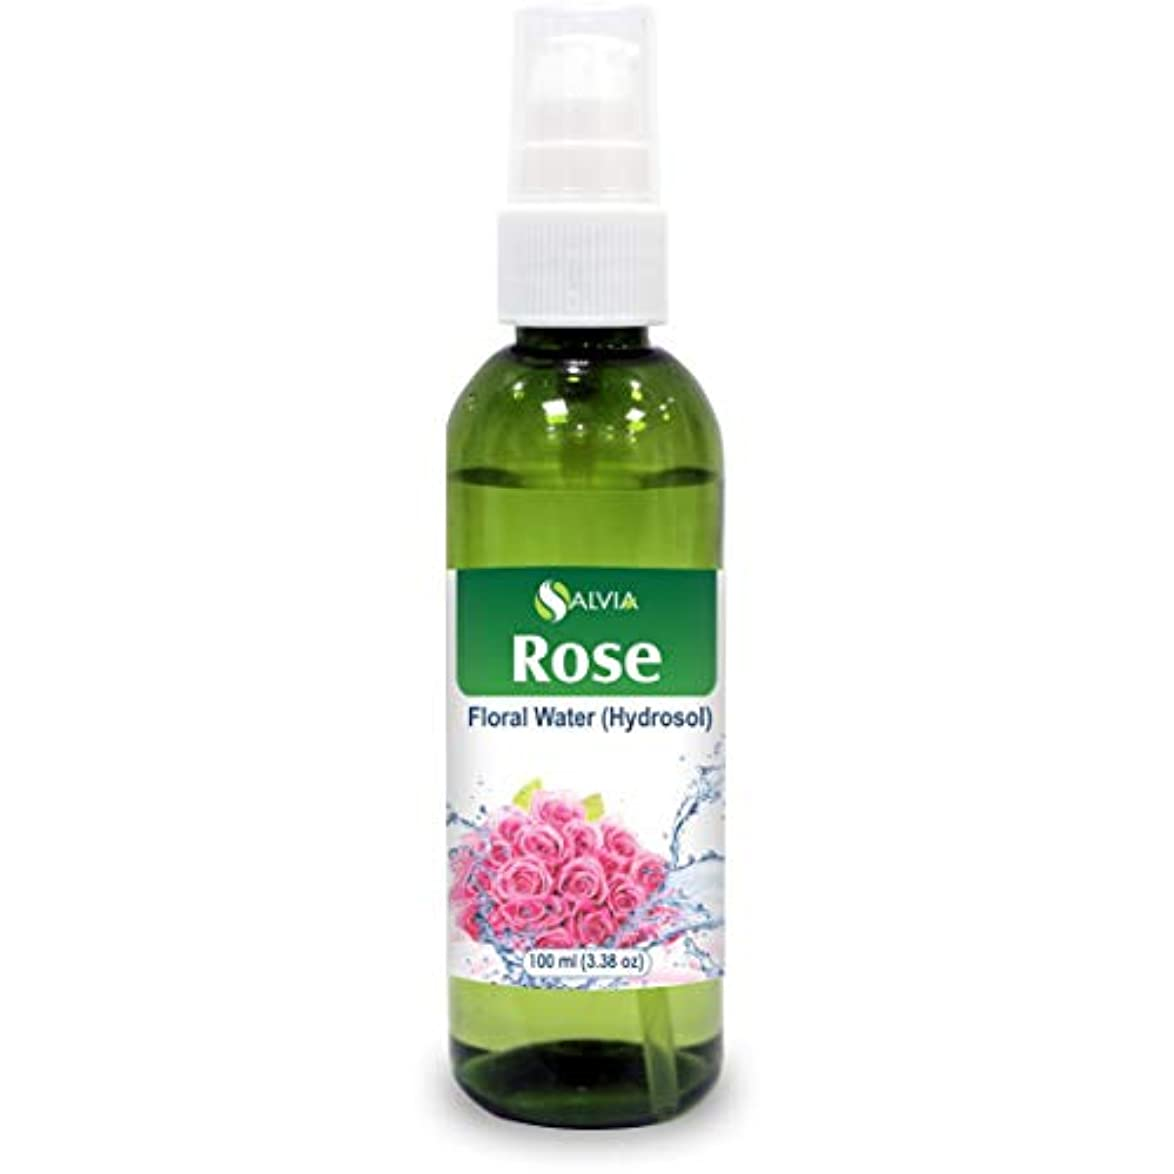 孤独適性権限を与えるRose Floral Water 100ml (Hydrosol) 100% Pure And Natural